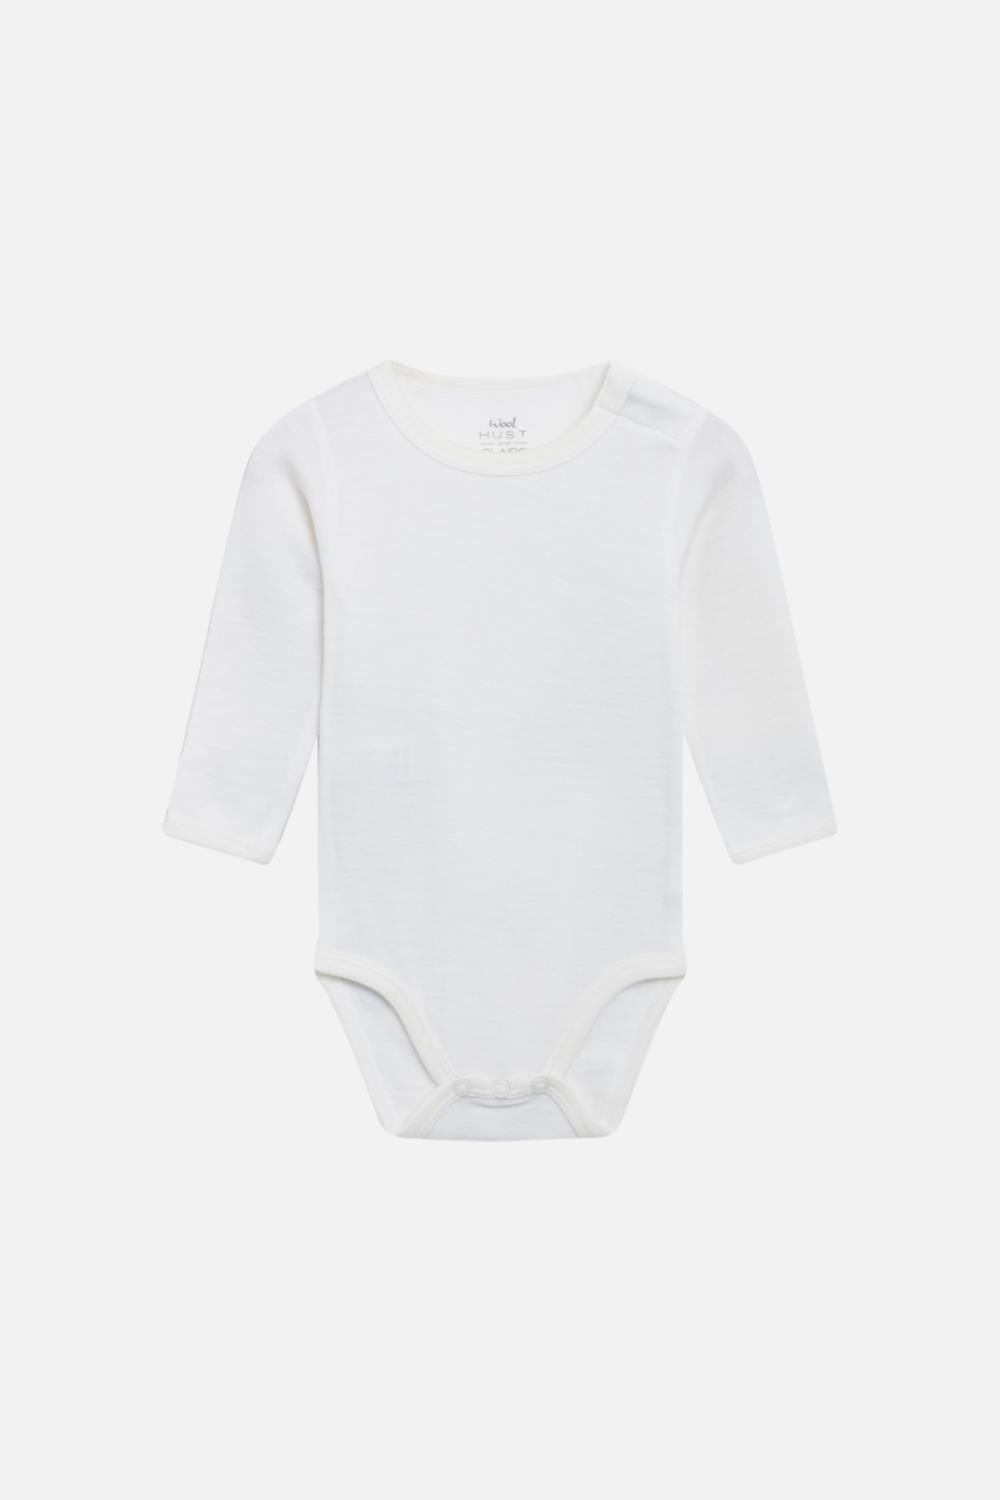 Hust and Claire - Body Bo i merinoull, offwhite